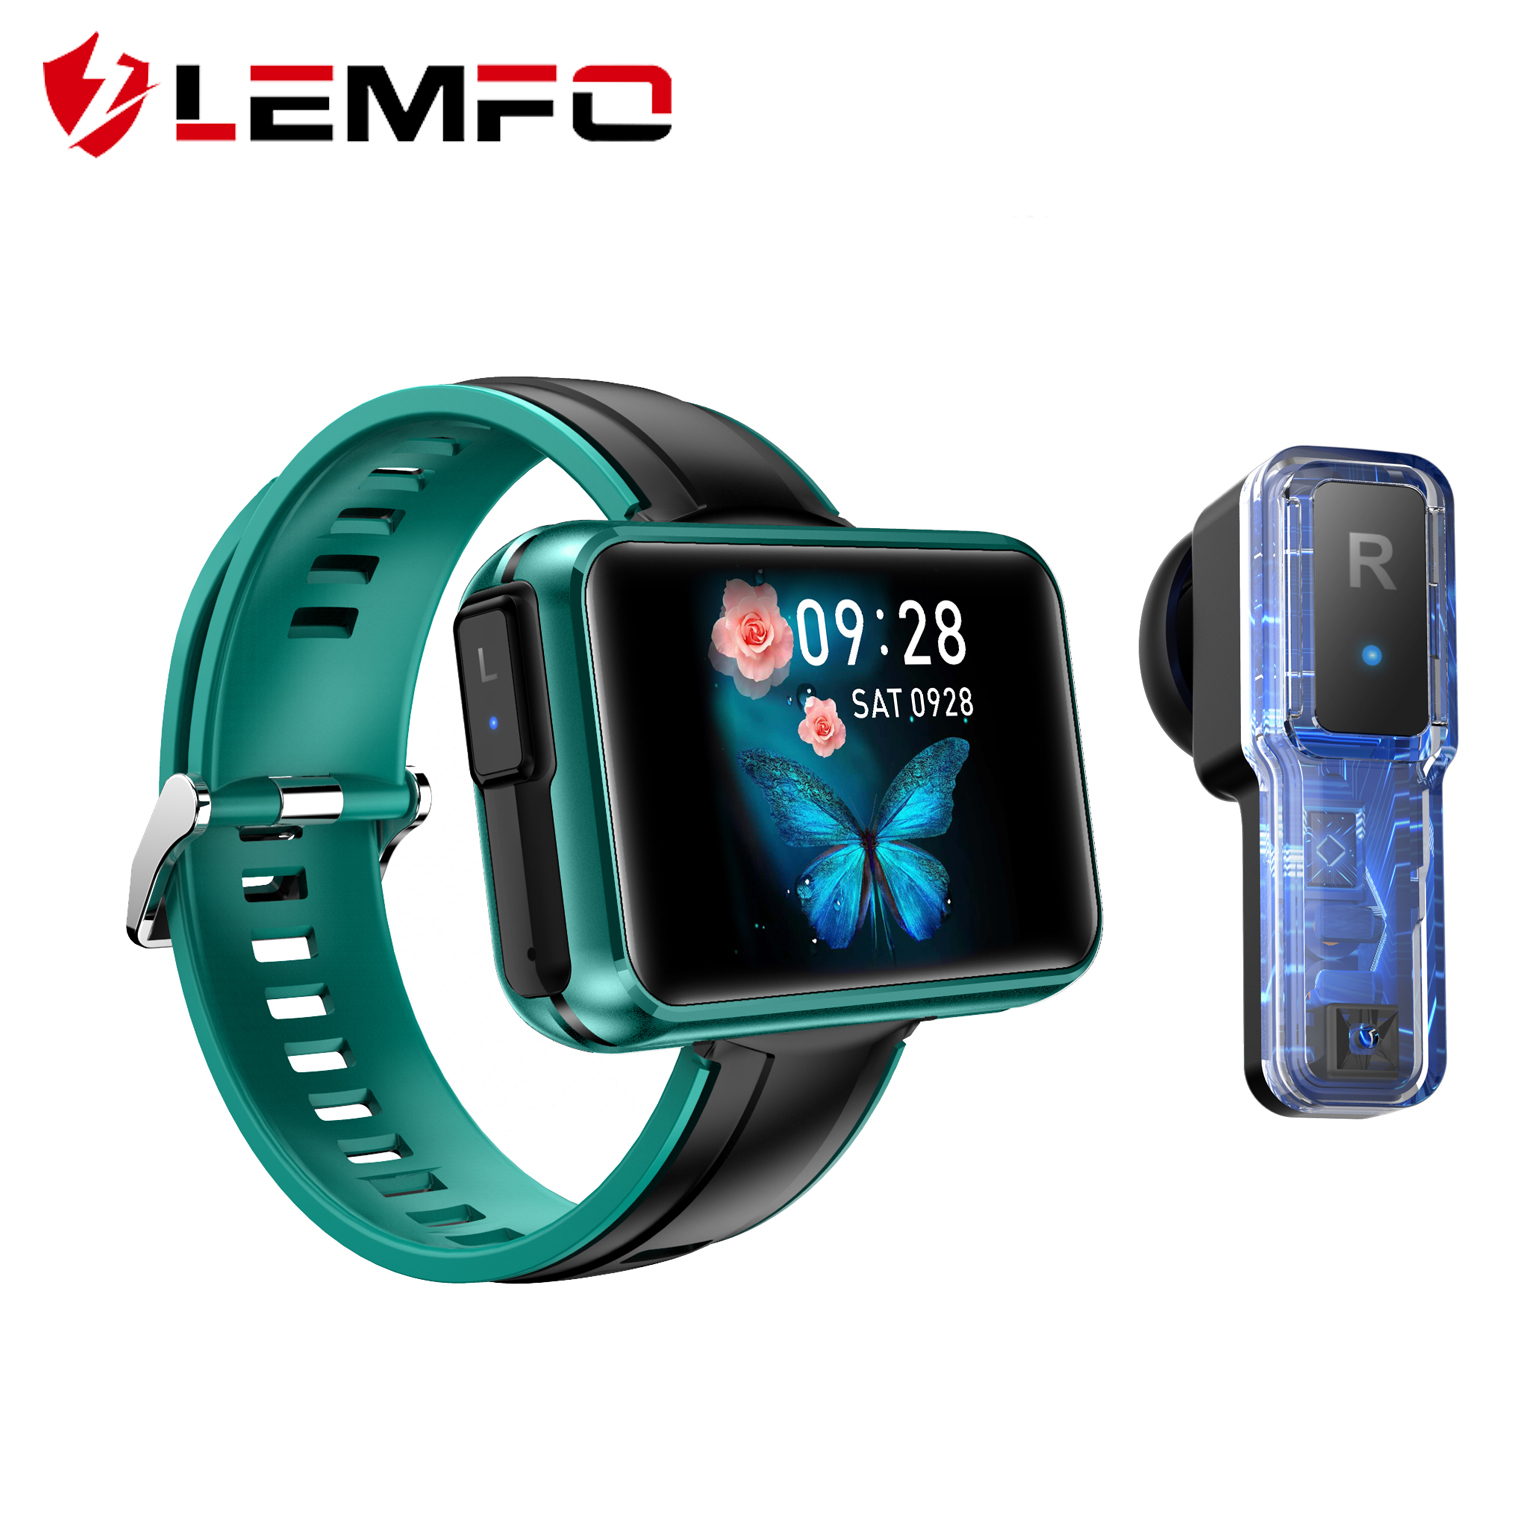 LEMFO TWS Wireless Smart Watch Men Sports Bluetooth Earphones Heart Rate Monitor 24H FUll Touch Screen Smart watch